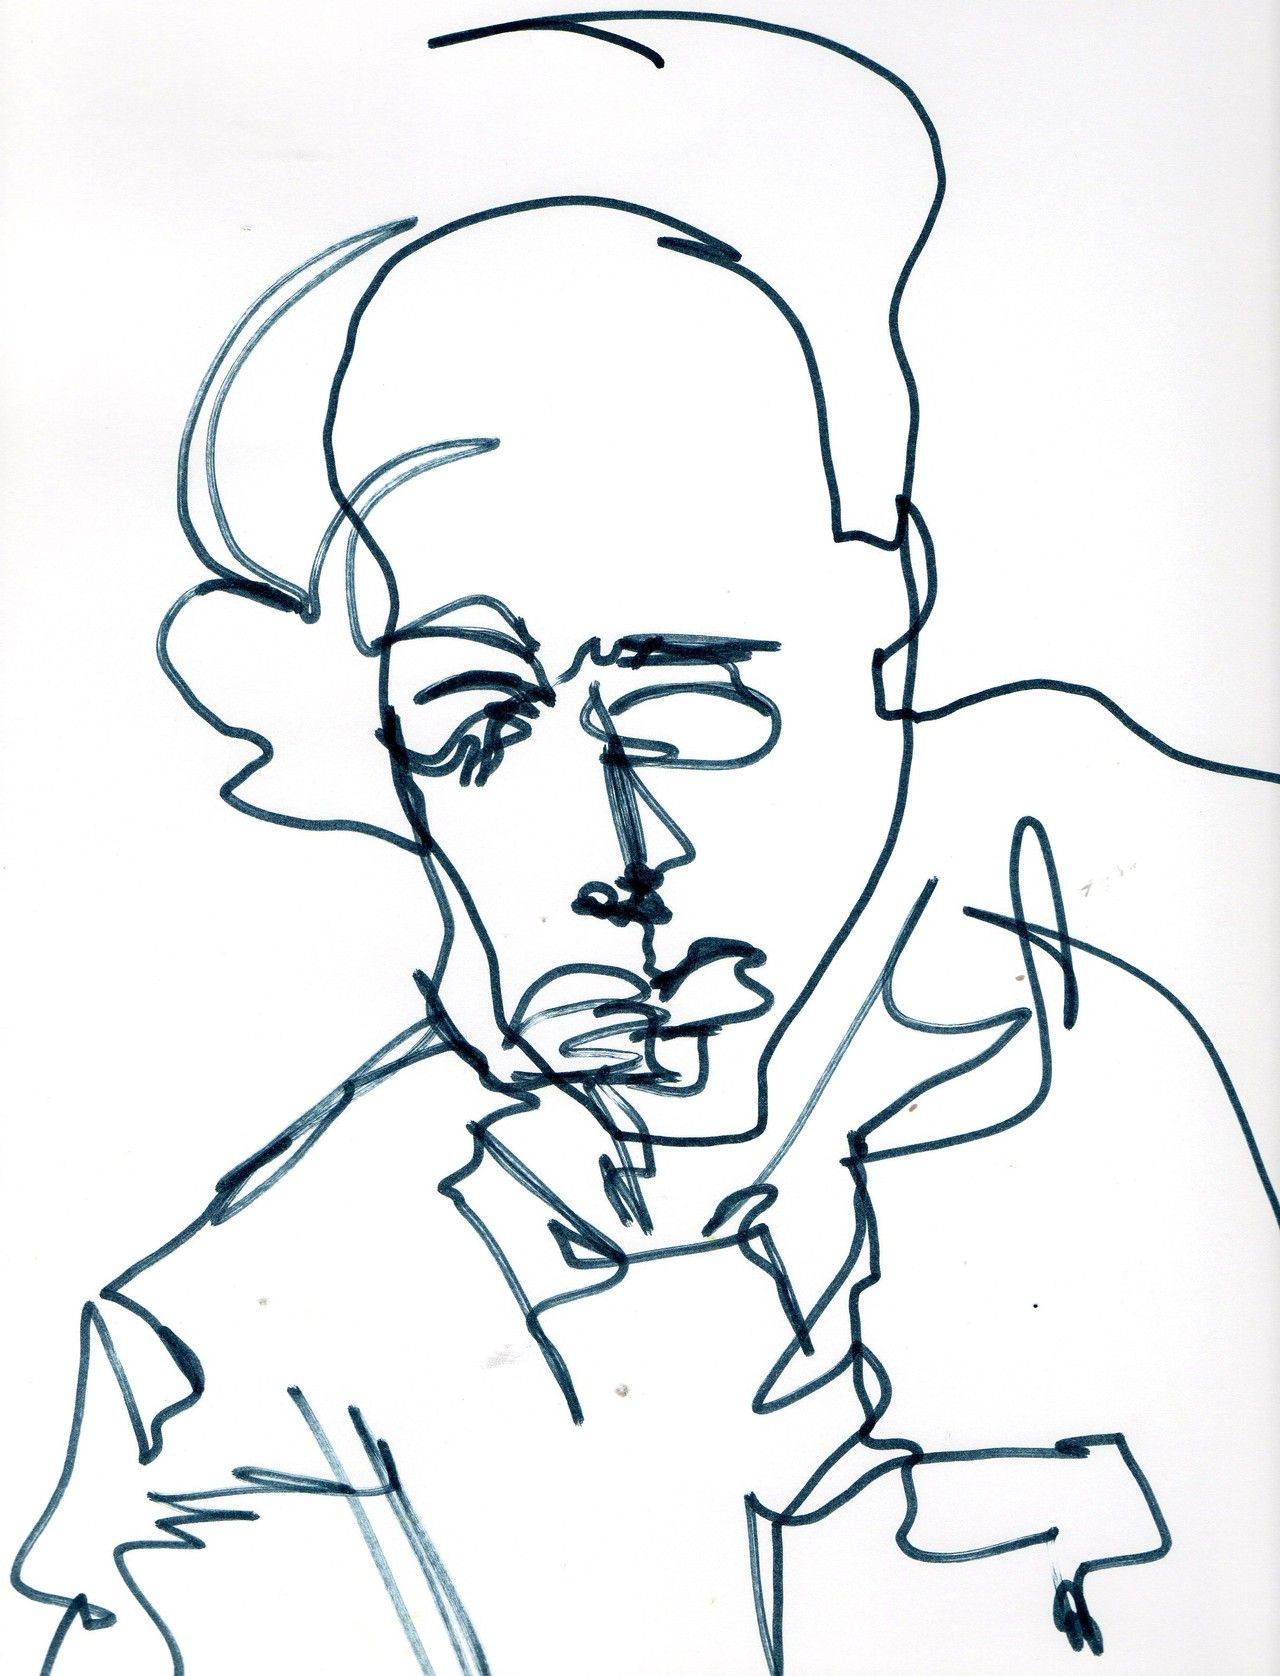 Blind Line Drawing Artists : Blind continuous line drawing peter greenhams american